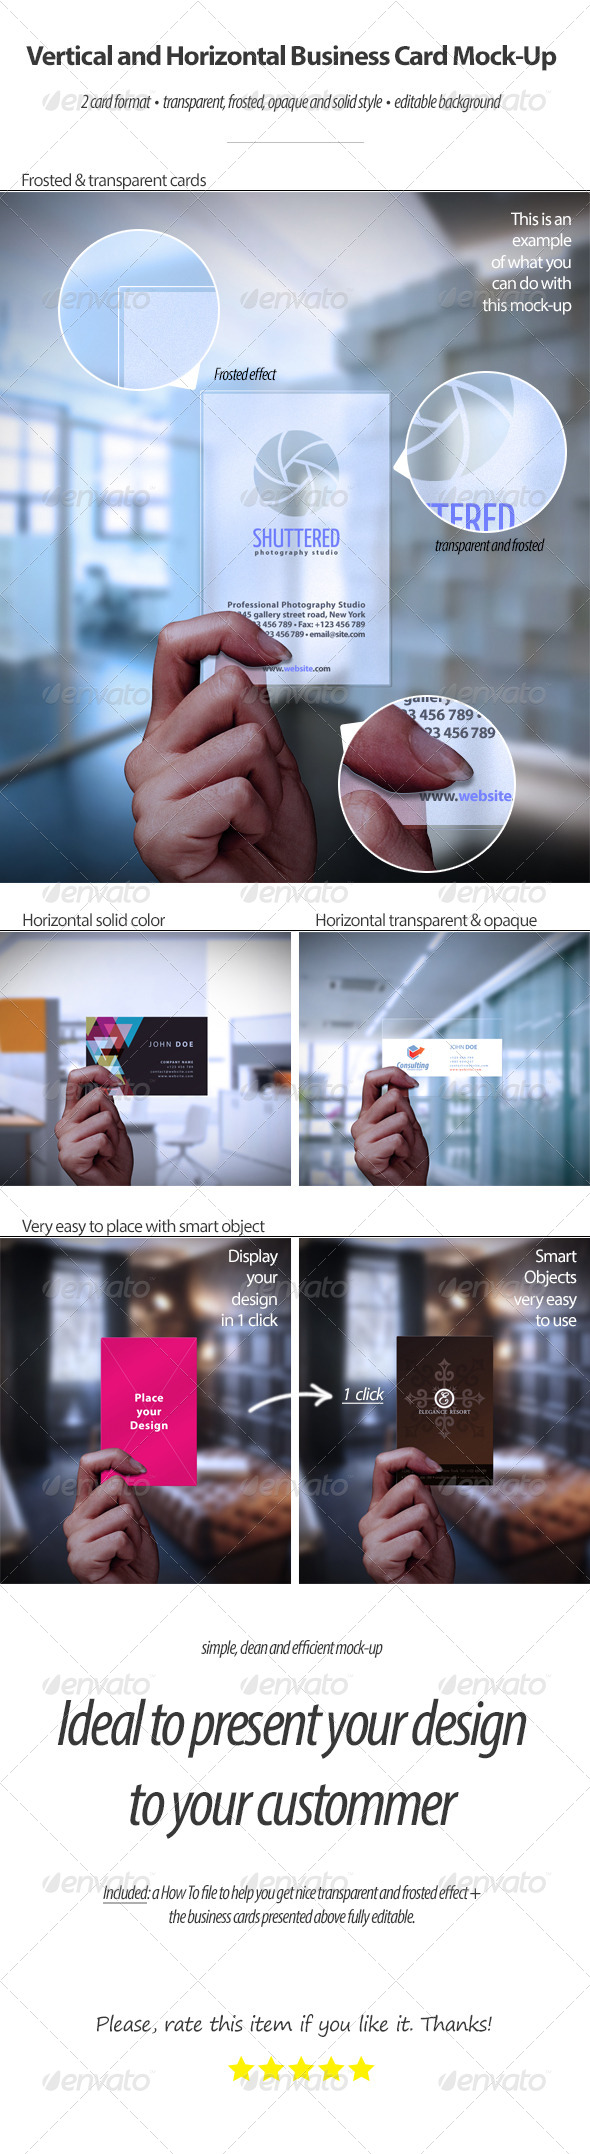 GraphicRiver Vertical and Horizontal Business Card Mock-Up 4429497